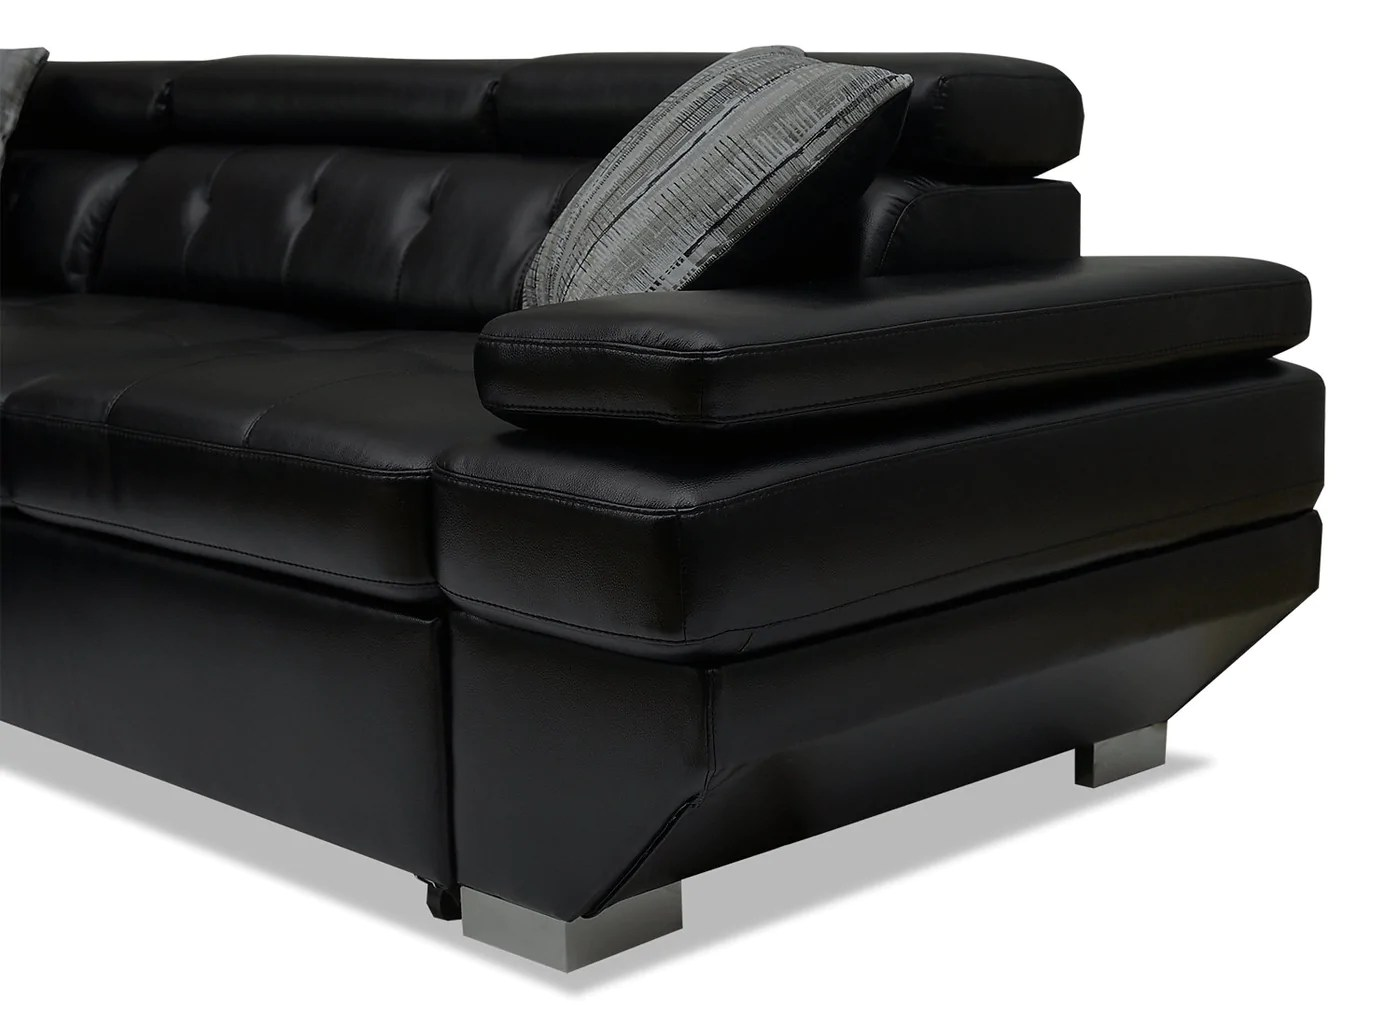 Whirlpool Outdoor Otto Otto 2 Piece Leather Look Fabric Left Facing Sleeper Sectional Black